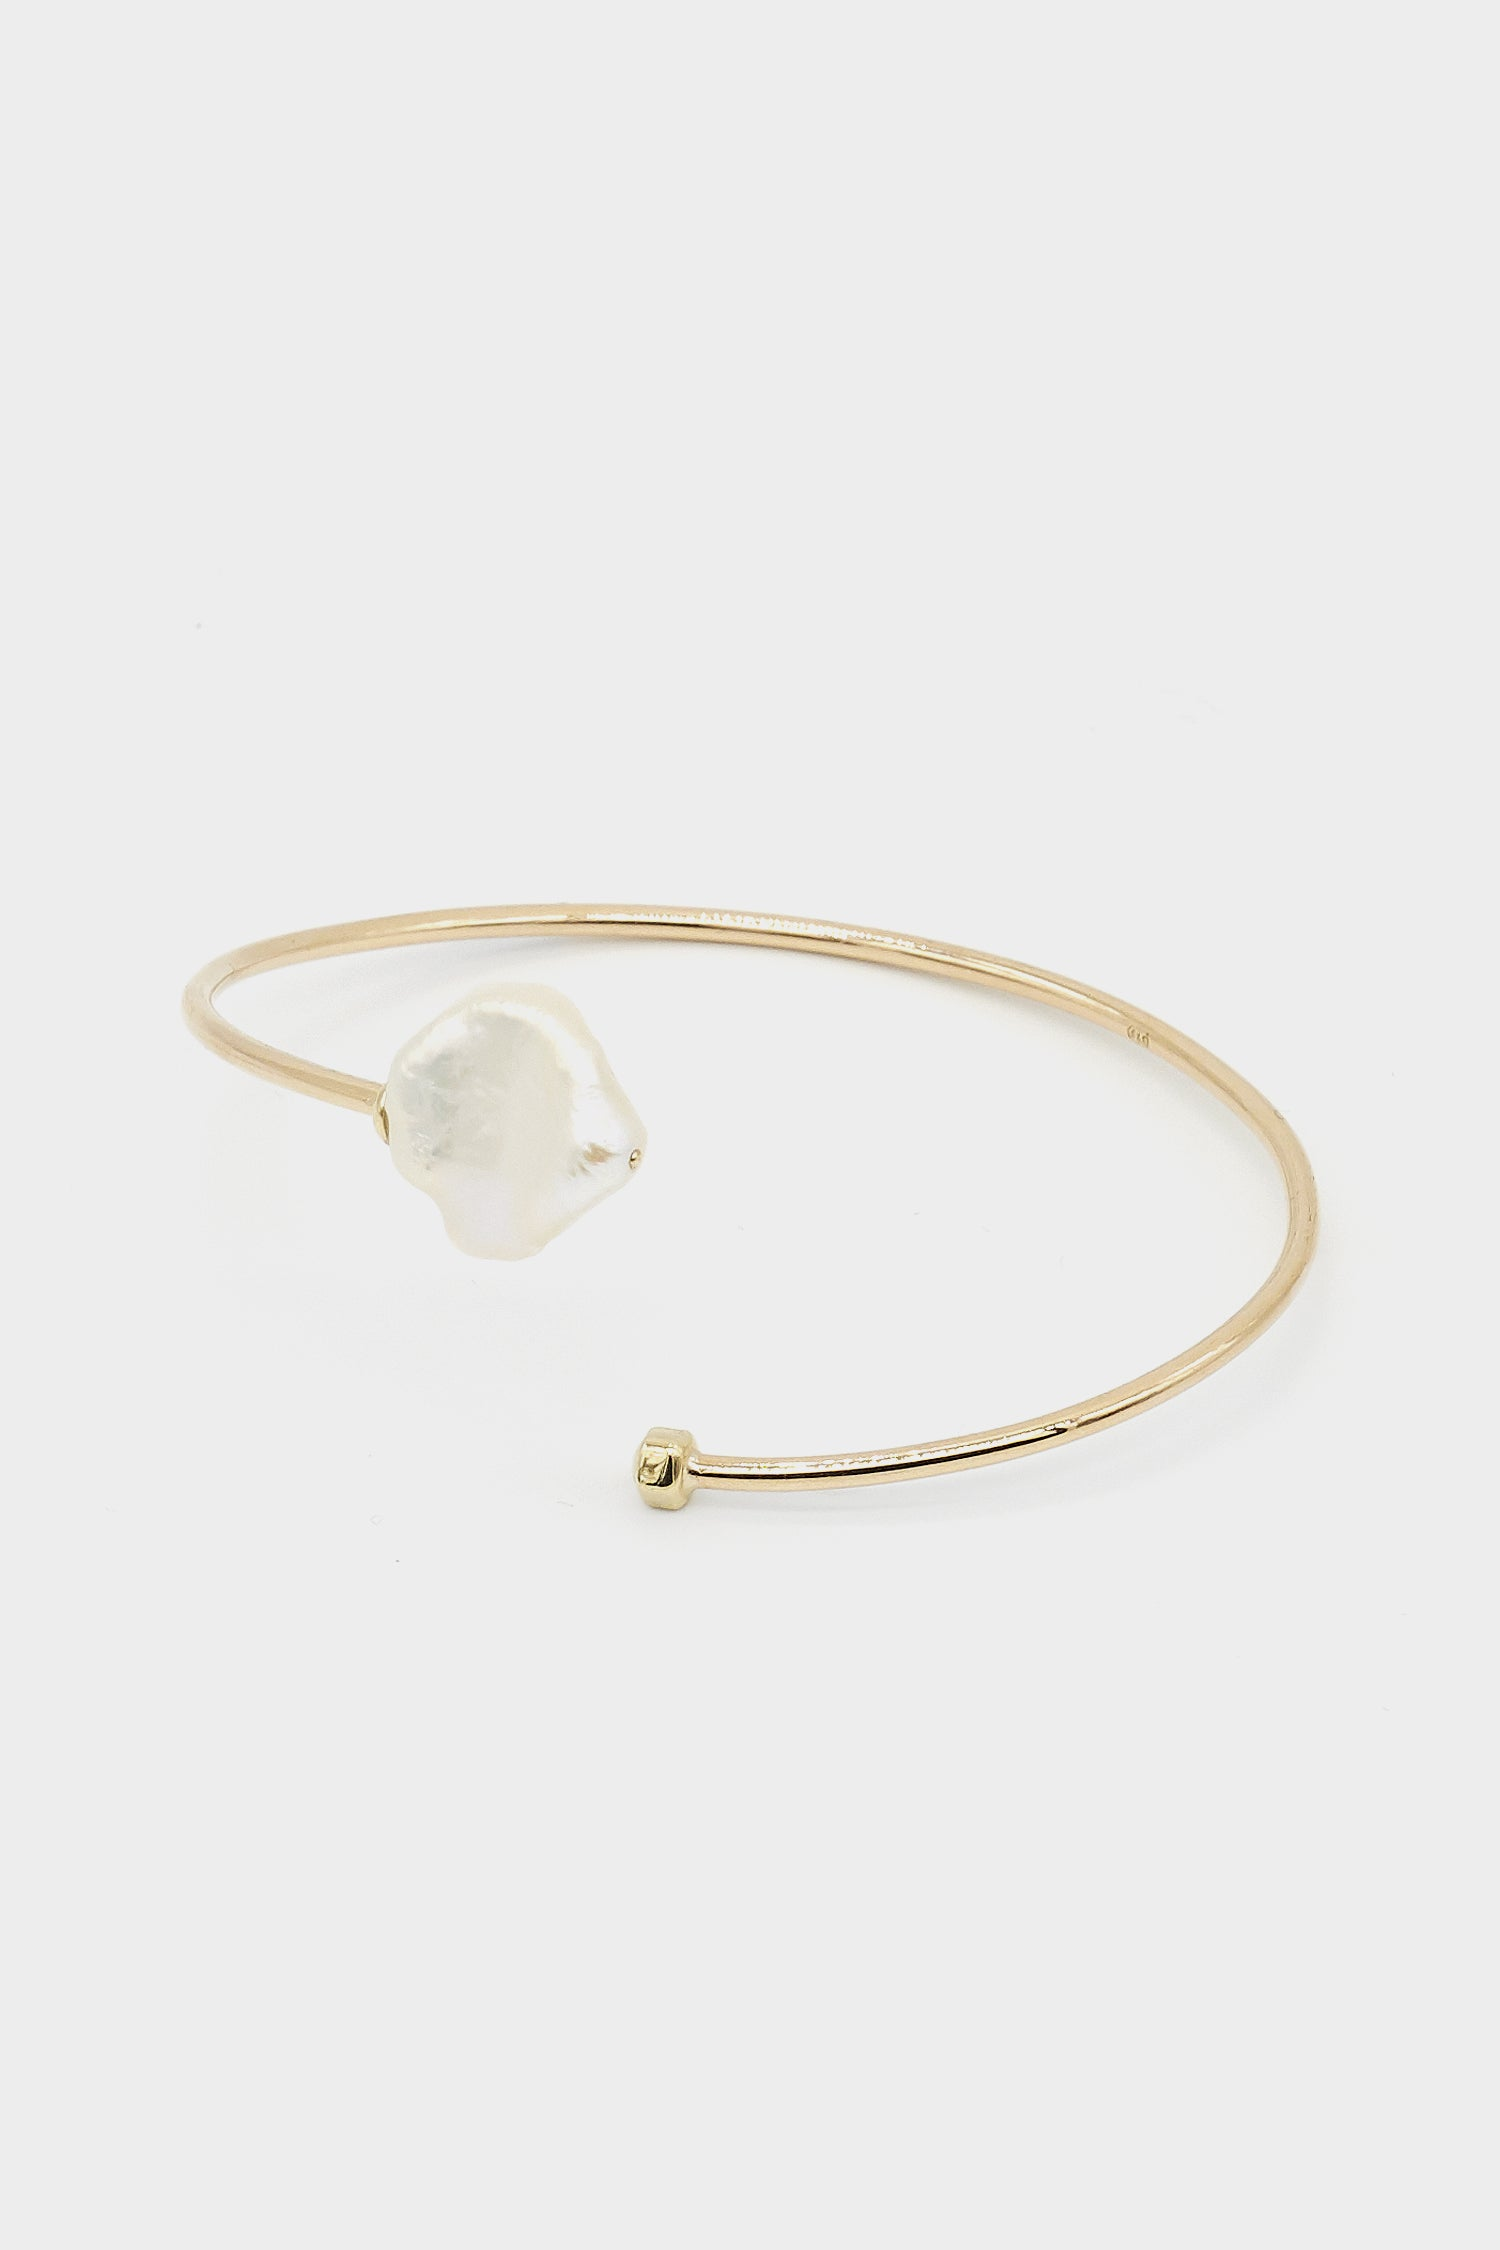 Keshi Pearl Bangle | 9K Yellow Gold